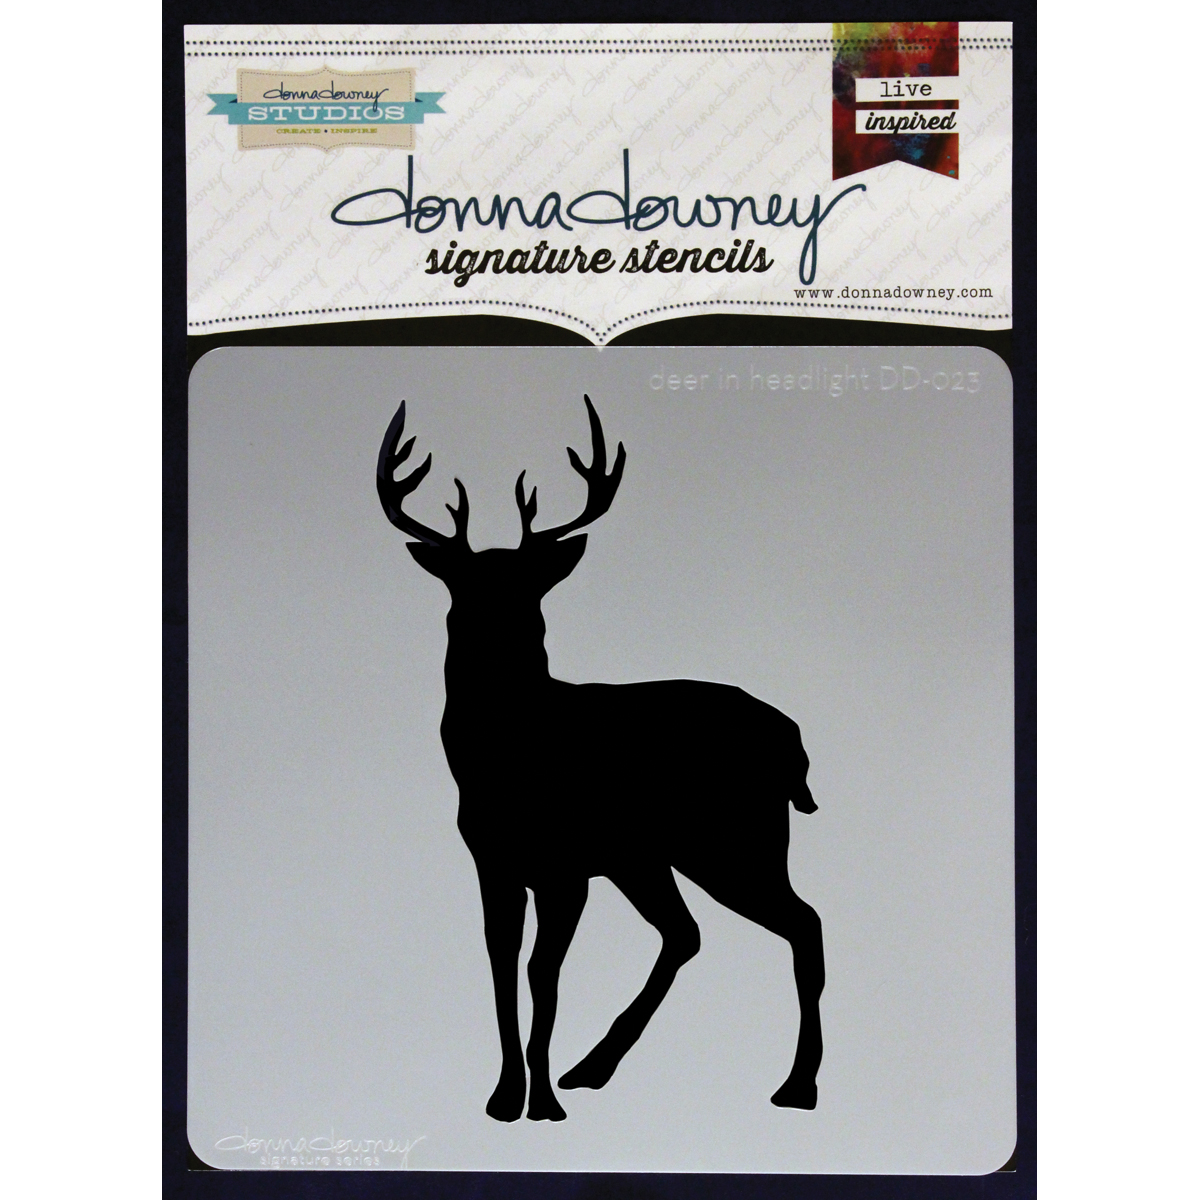 """Donna Downey Signature Stencils 8.5""""X8.5""""-Deer In Headlight - image 1 of 1"""